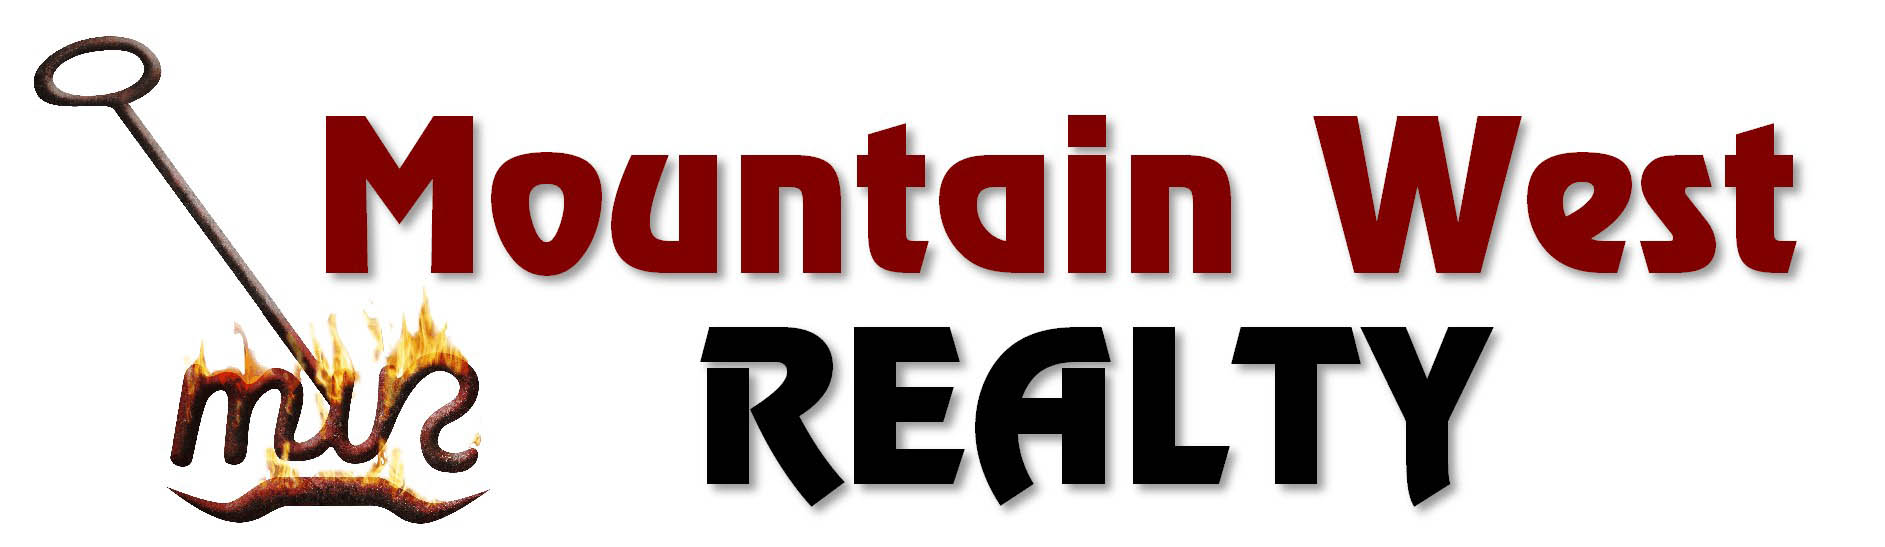 Mountain West Realty, Inc